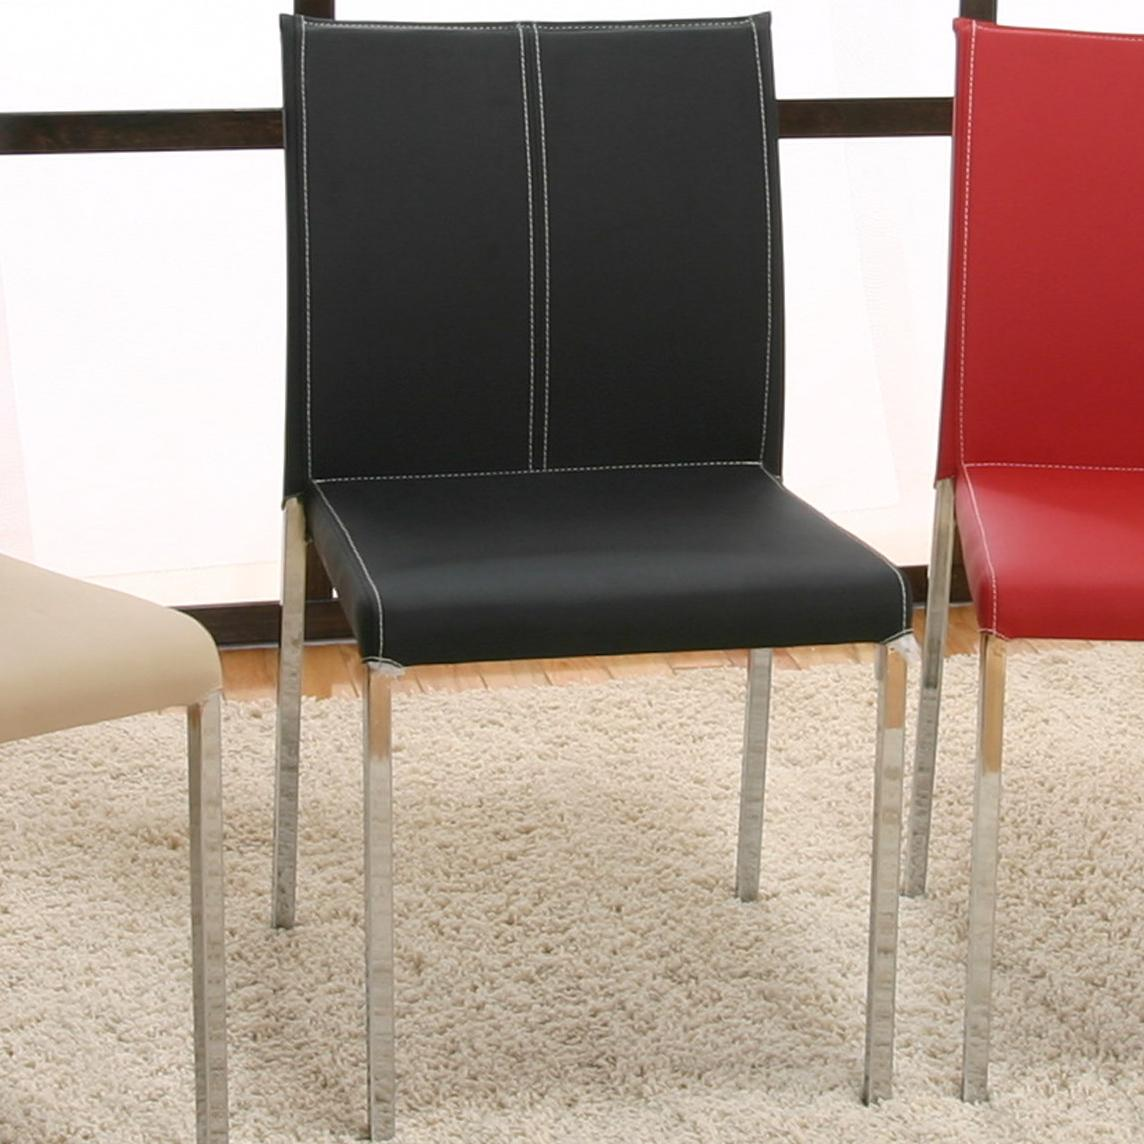 Cramco, Inc Contemporary Designs - Corona Chrome Stack Chair - Item Number: F5079-01